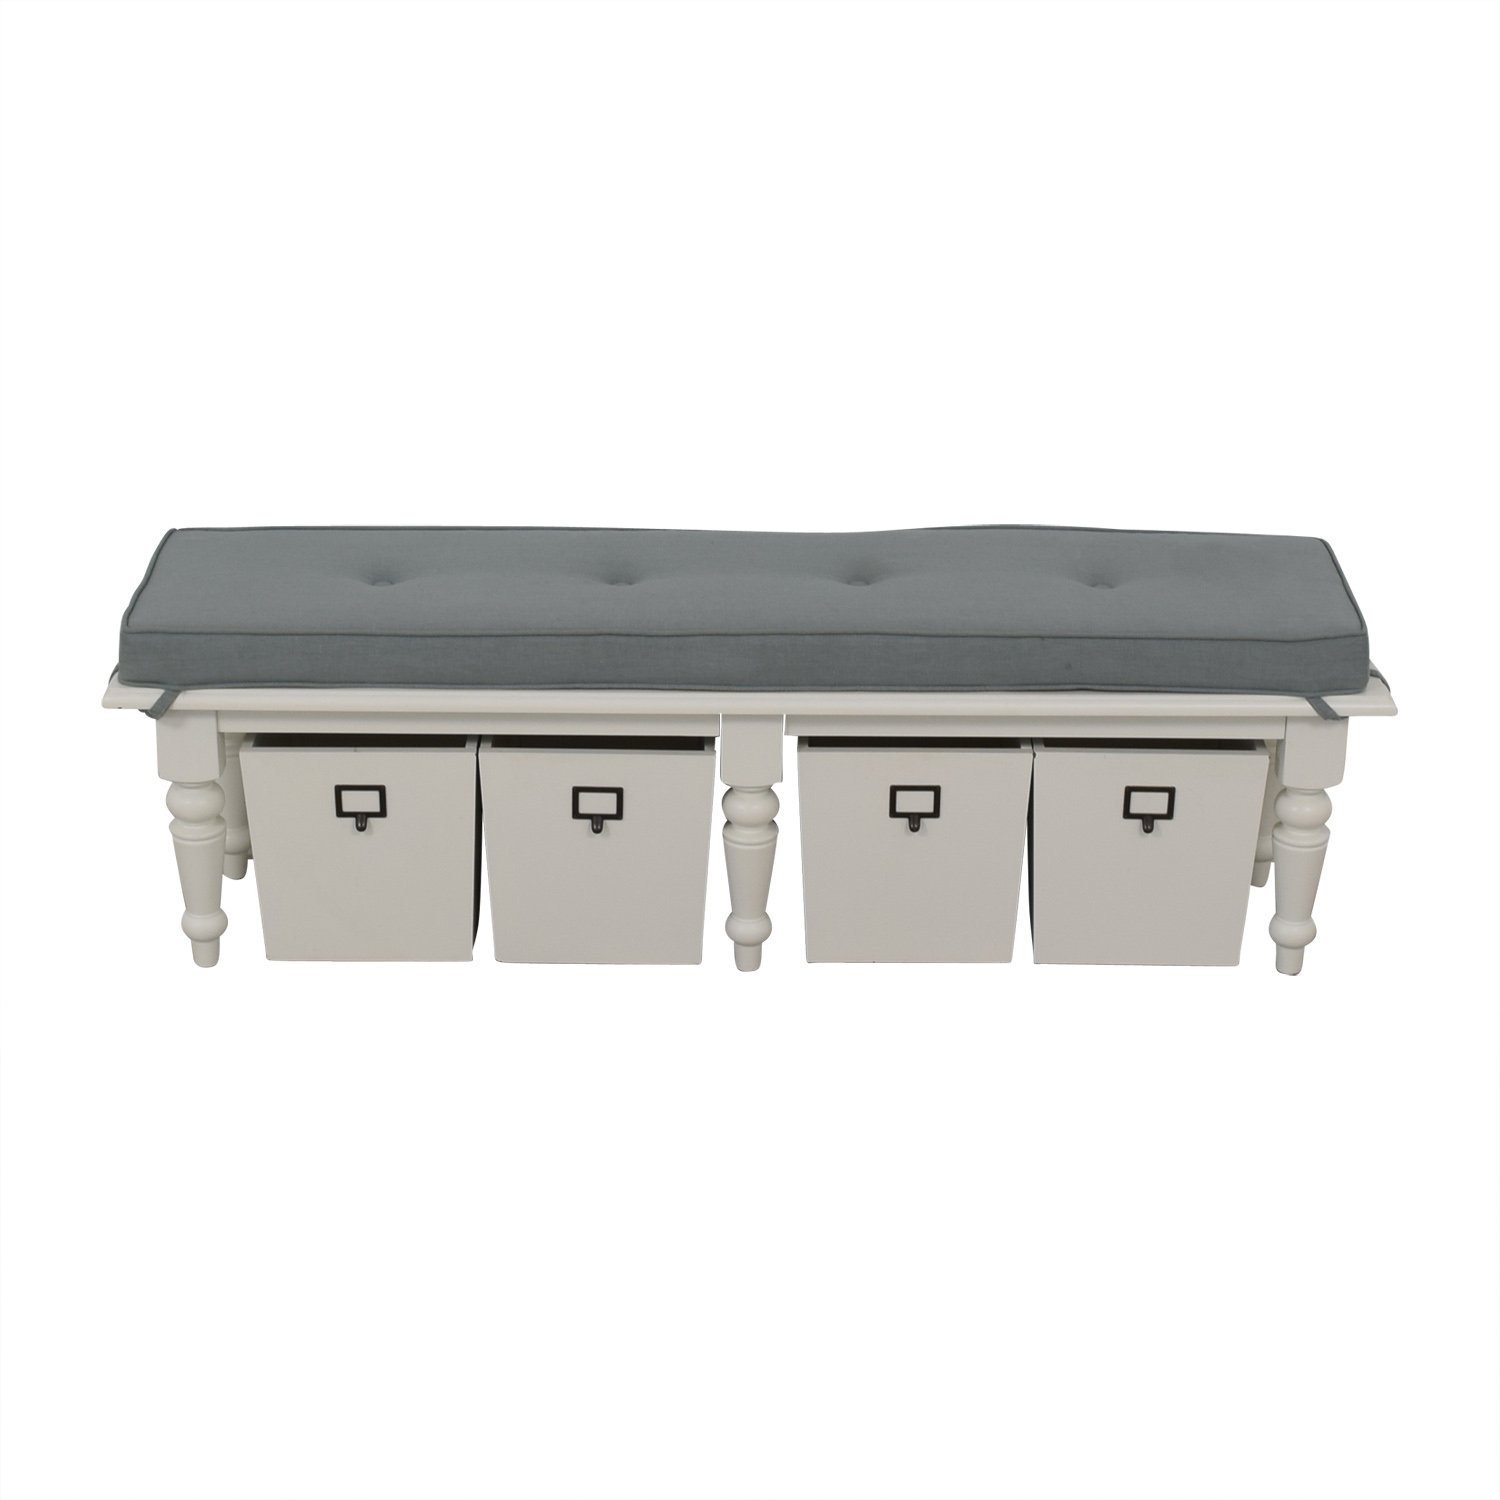 Home Goods Home Goods Grey Upholstered and White Bench with Four Storage Boxes dimensions